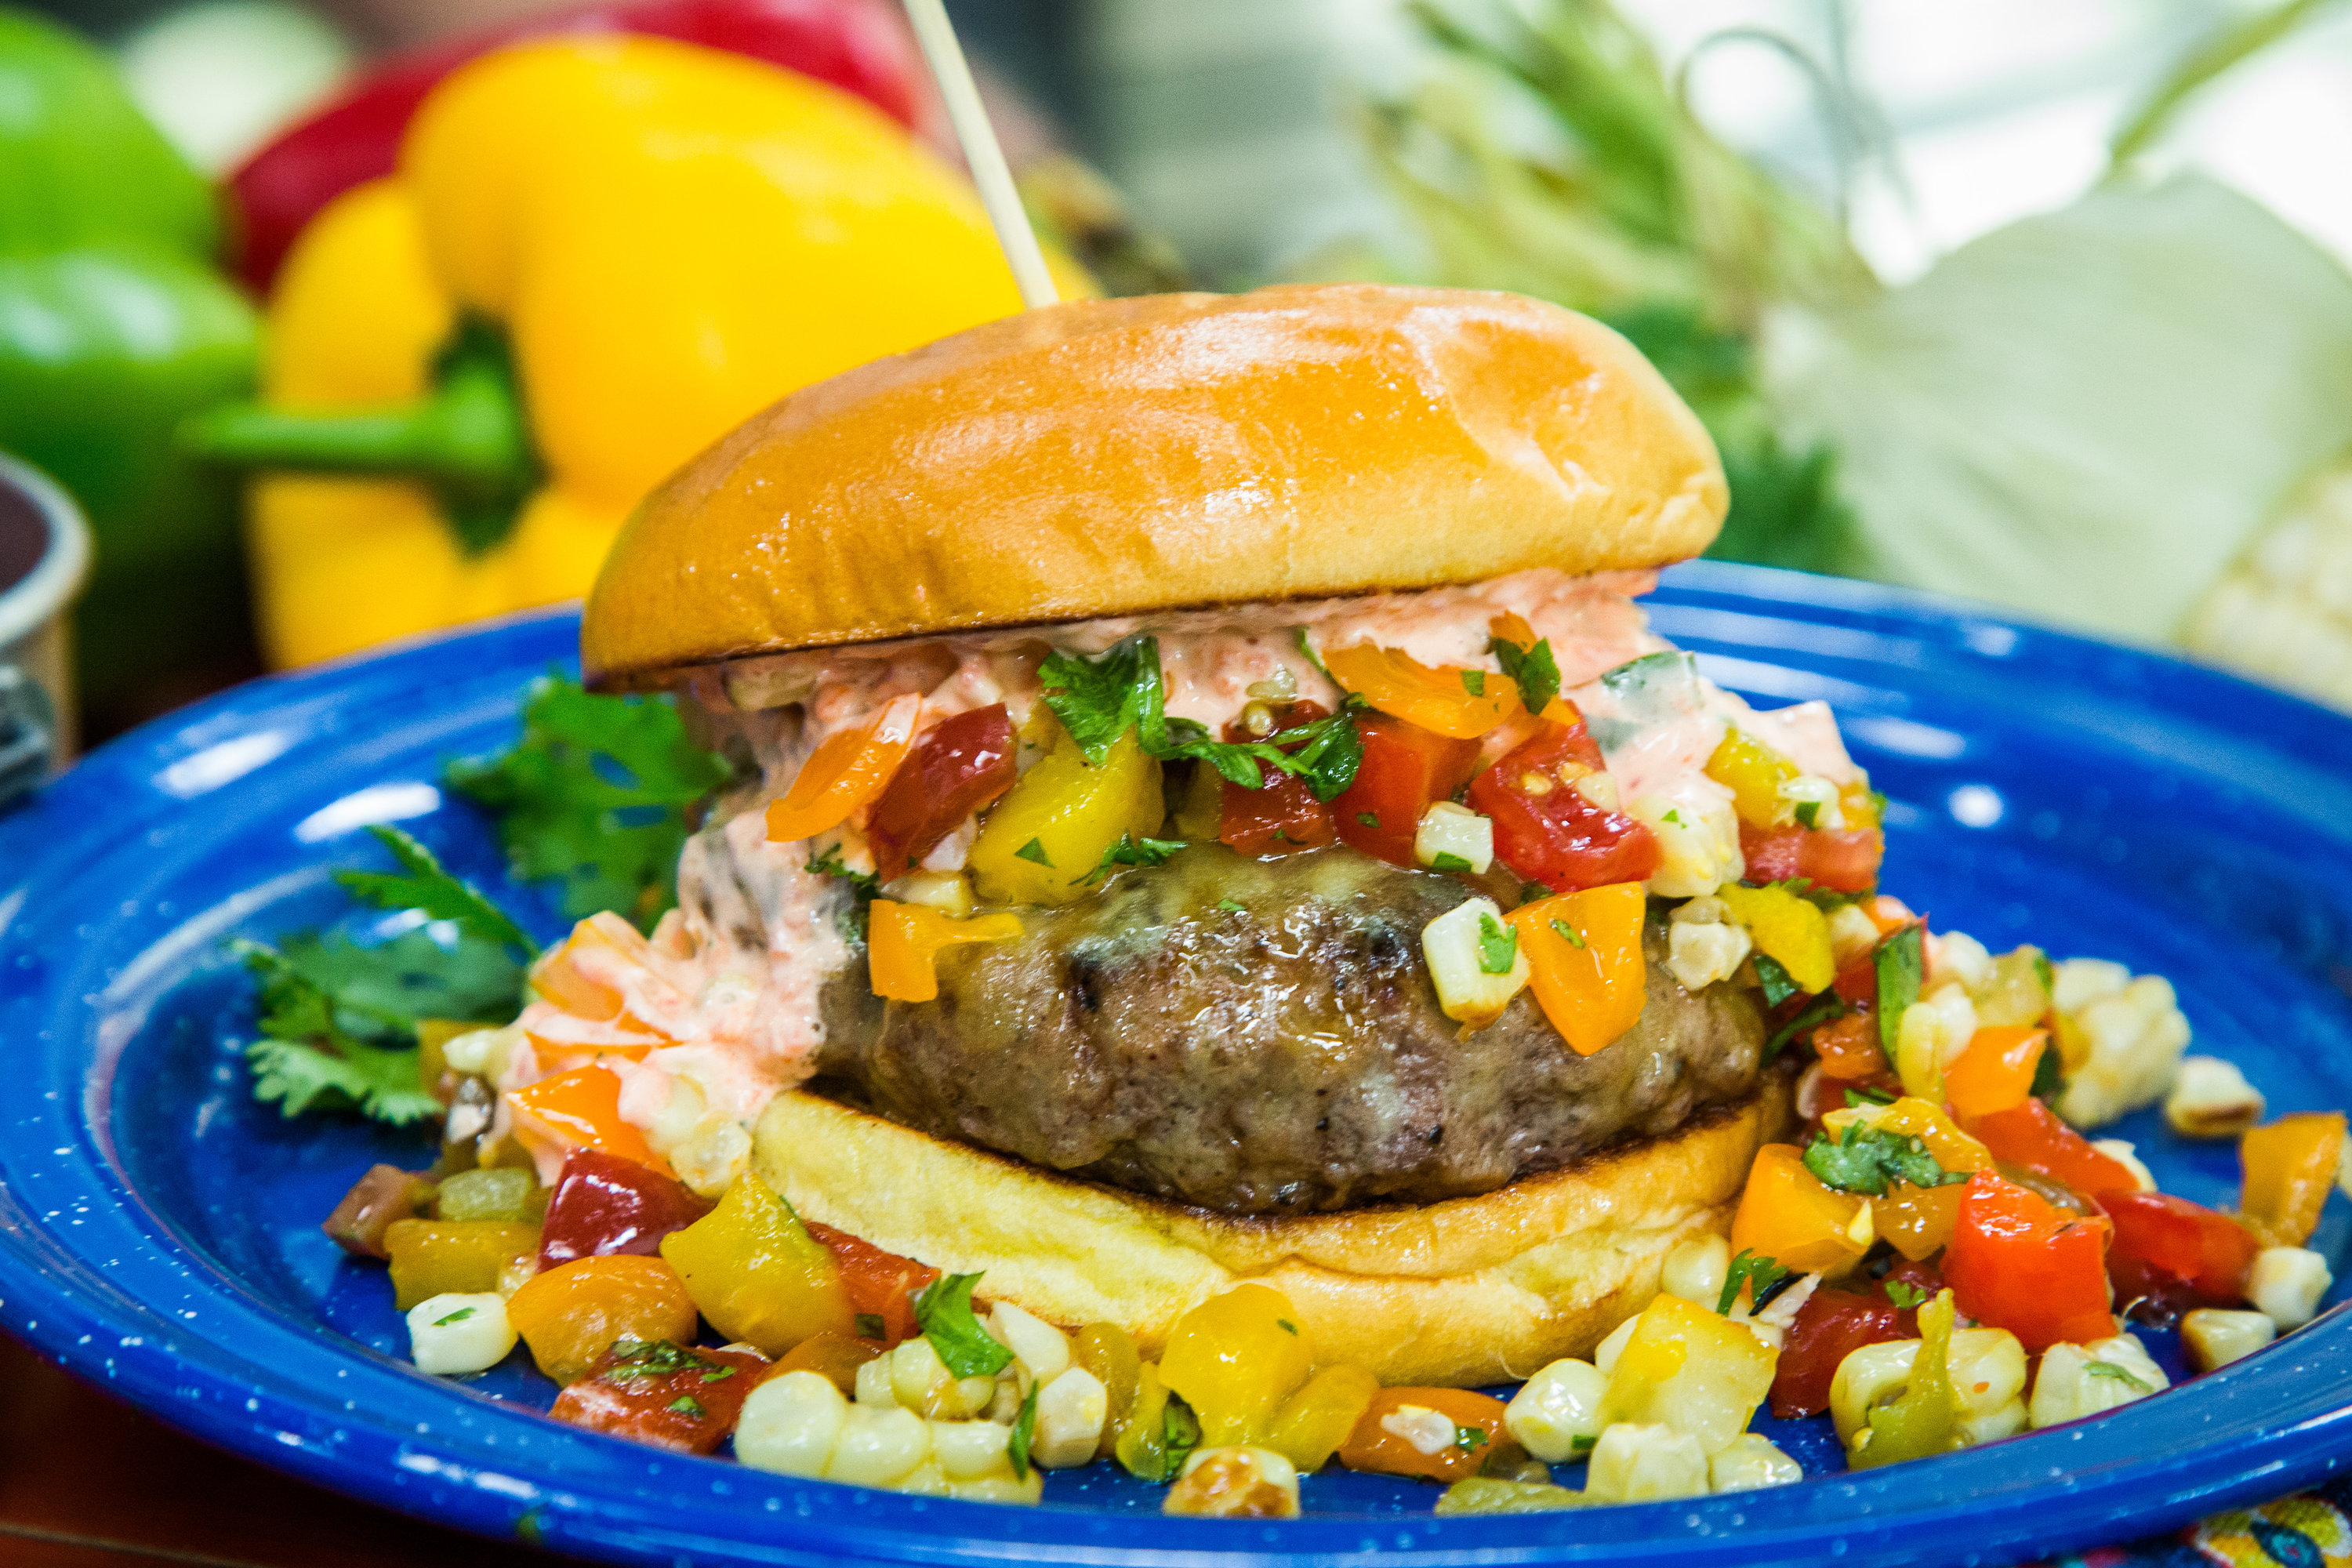 Hollywood steals home and family - Hollywood Steals Home And Family Summer Salad Burger